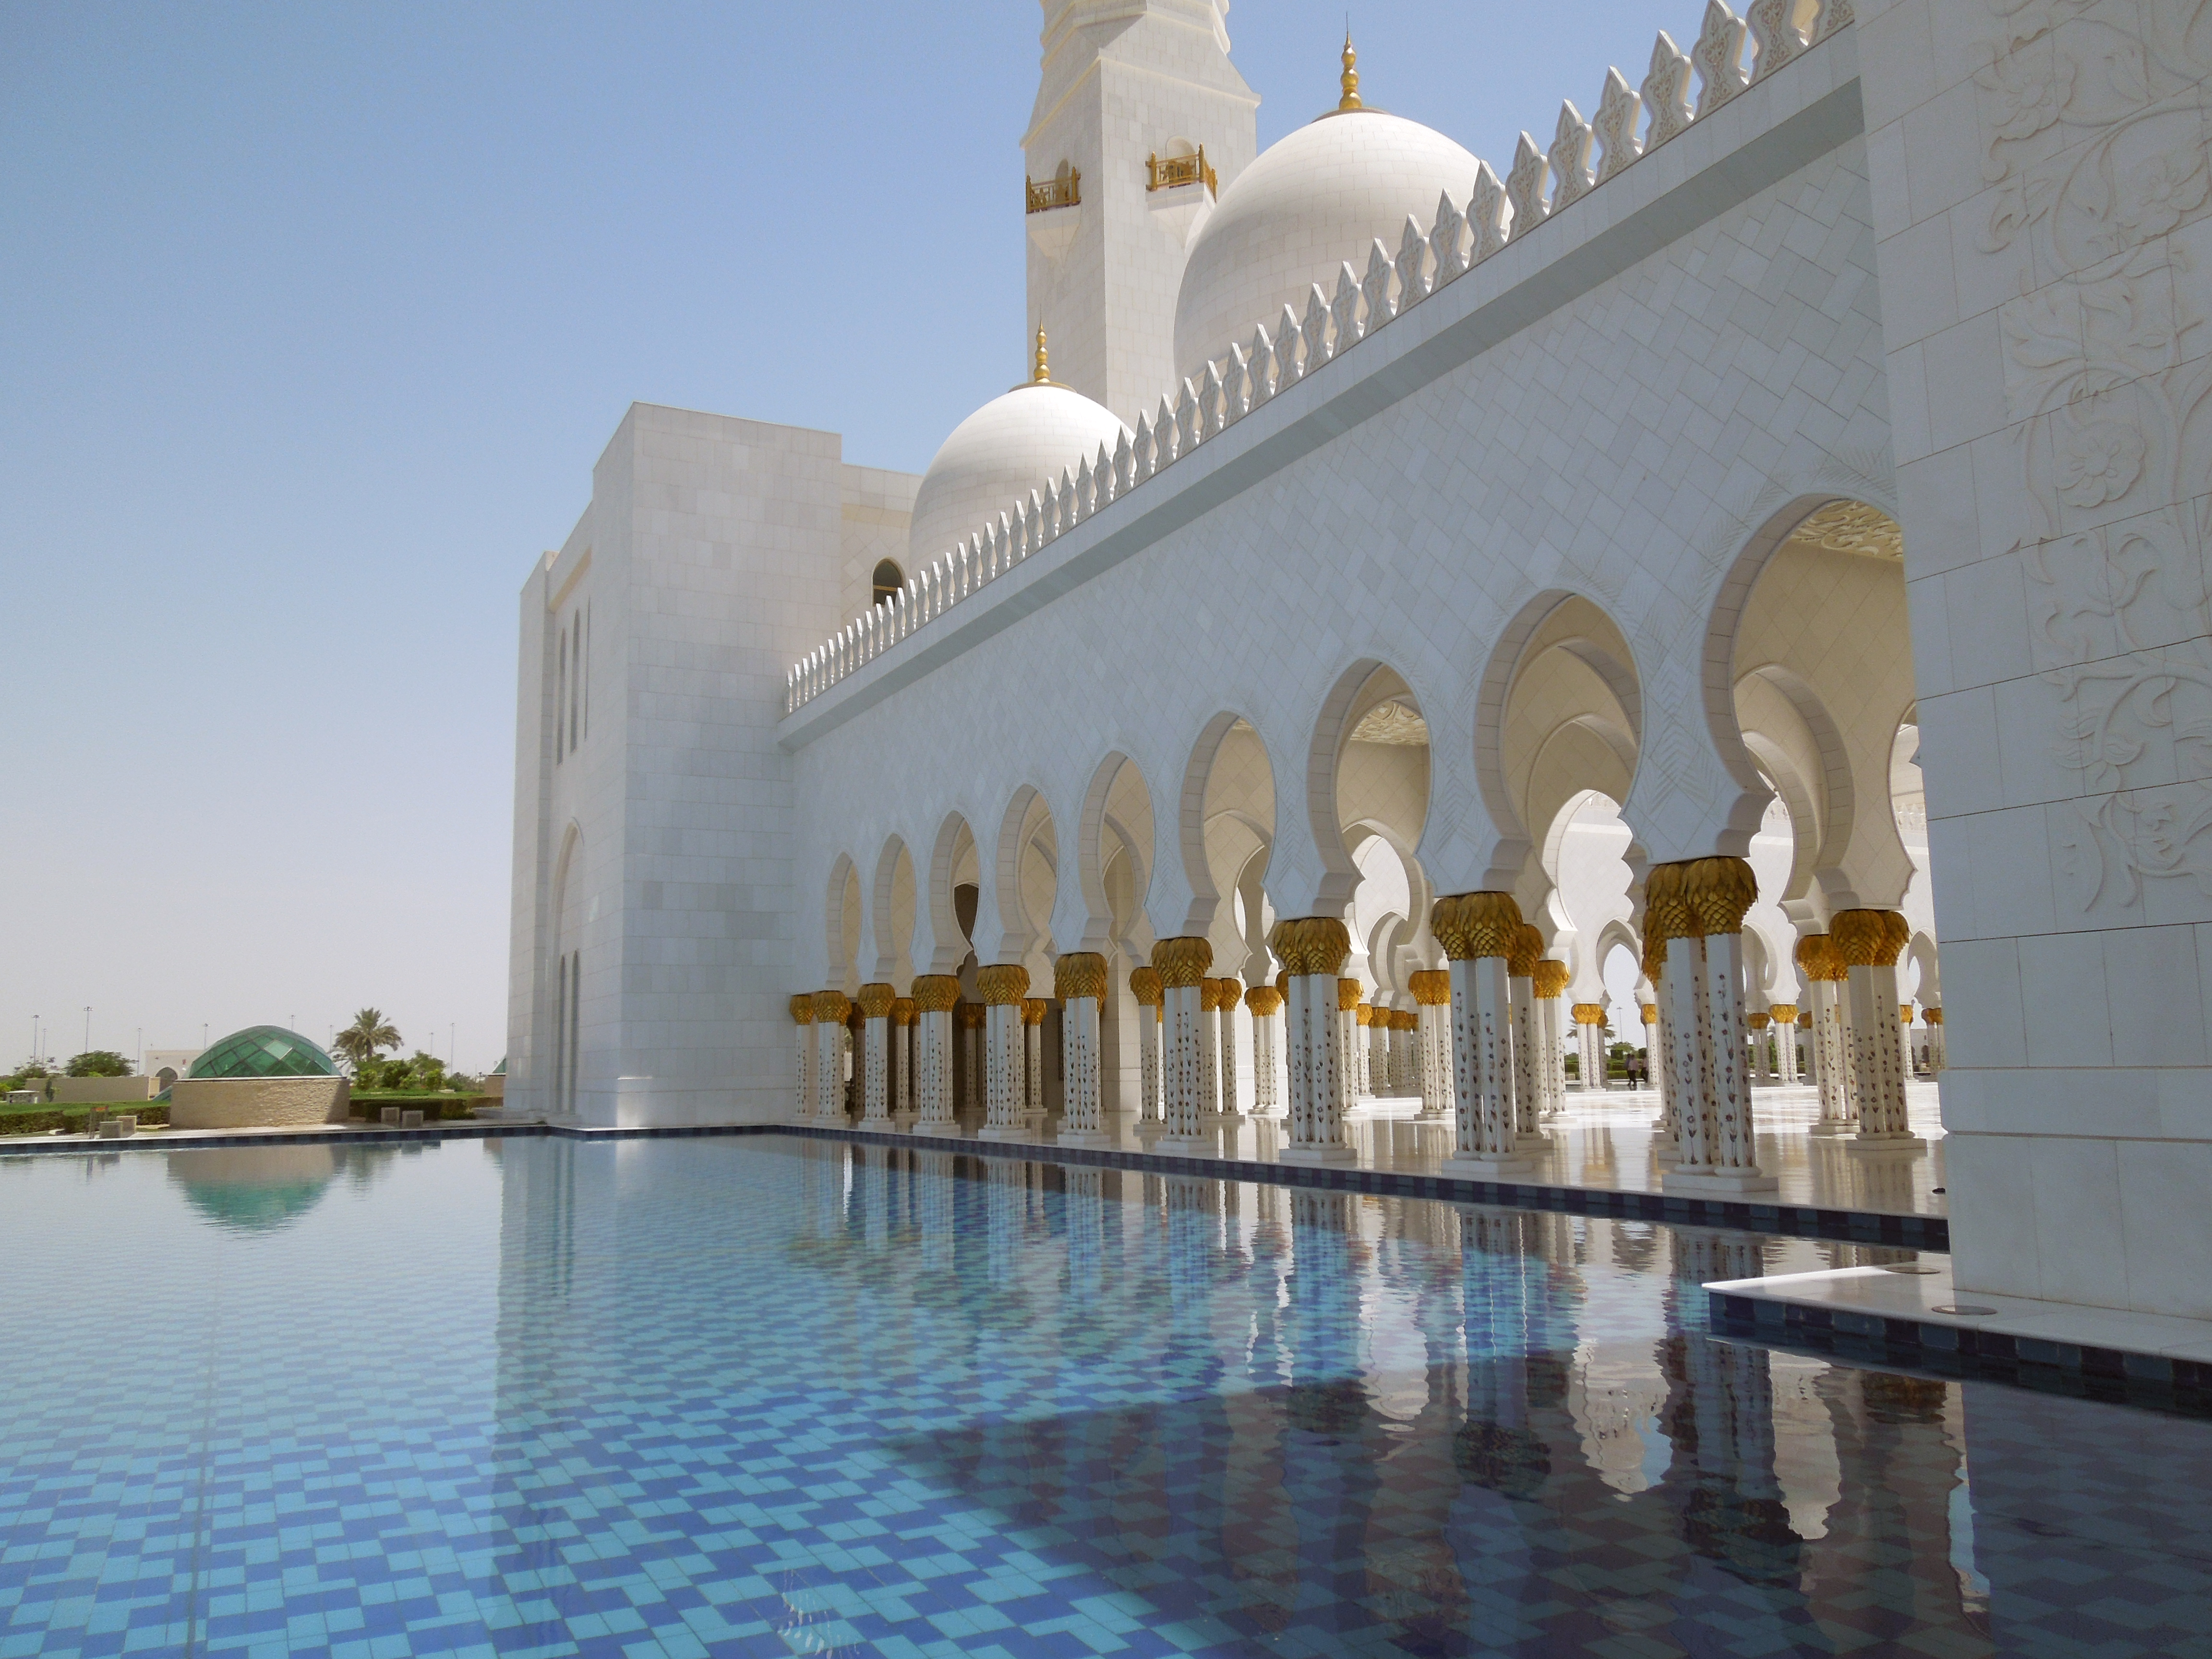 Abu Dhabi's Grand Mosque | The Anecdotal Goat